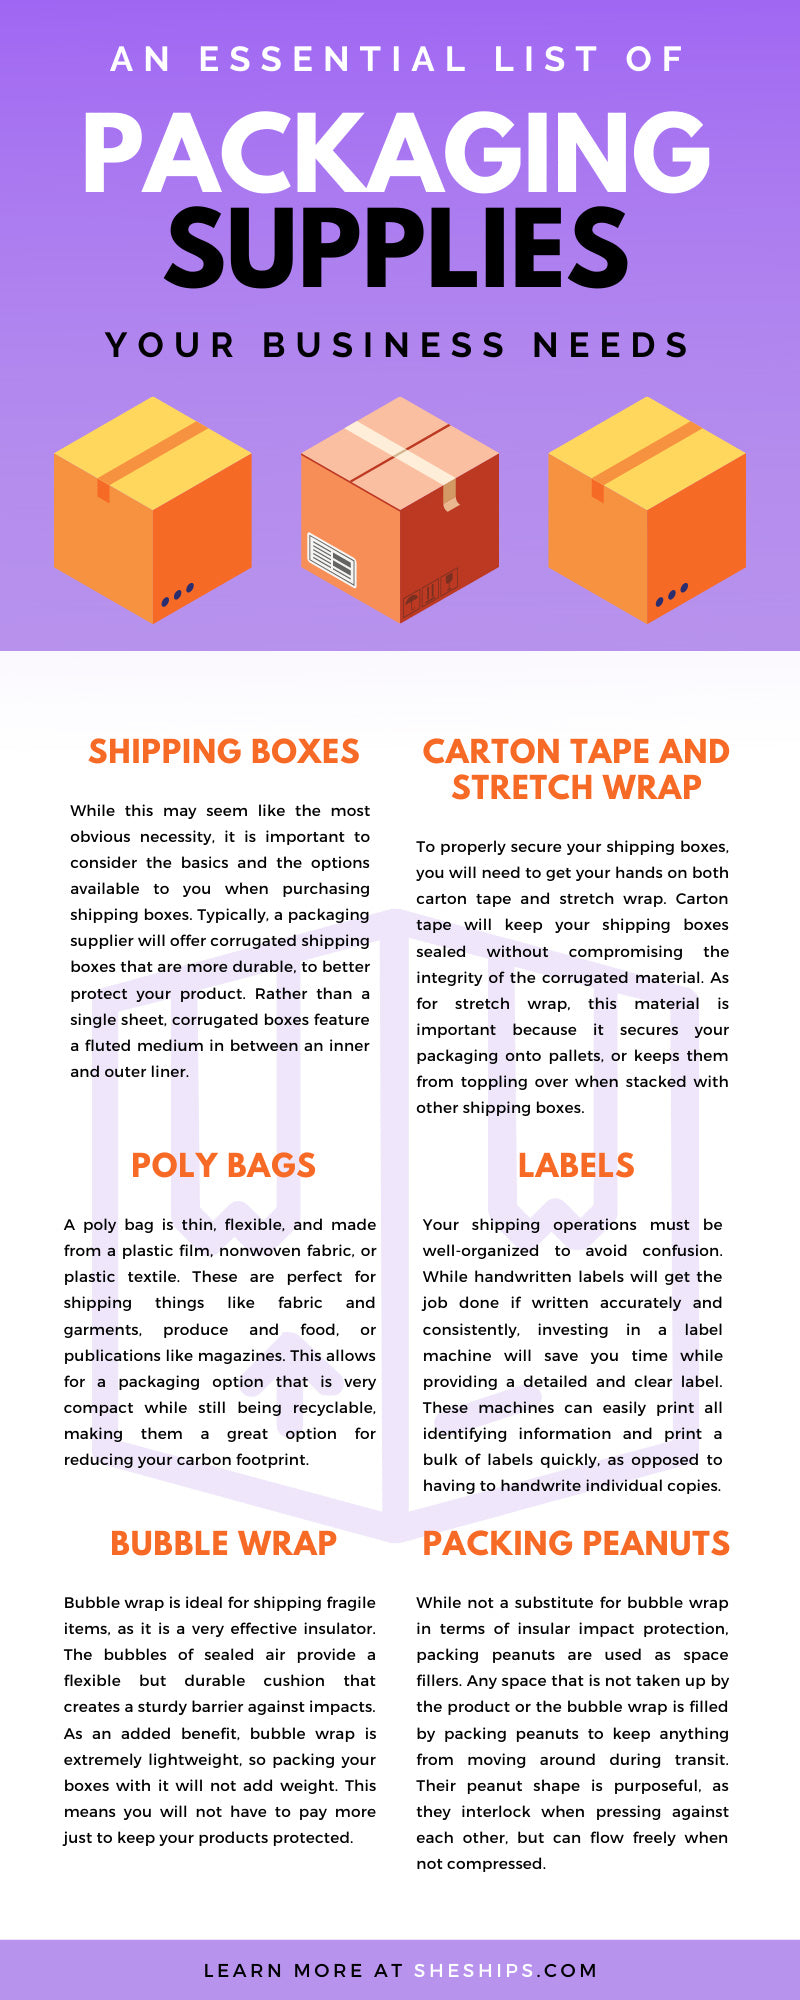 An Essential List of Packaging Supplies Your Business Needs